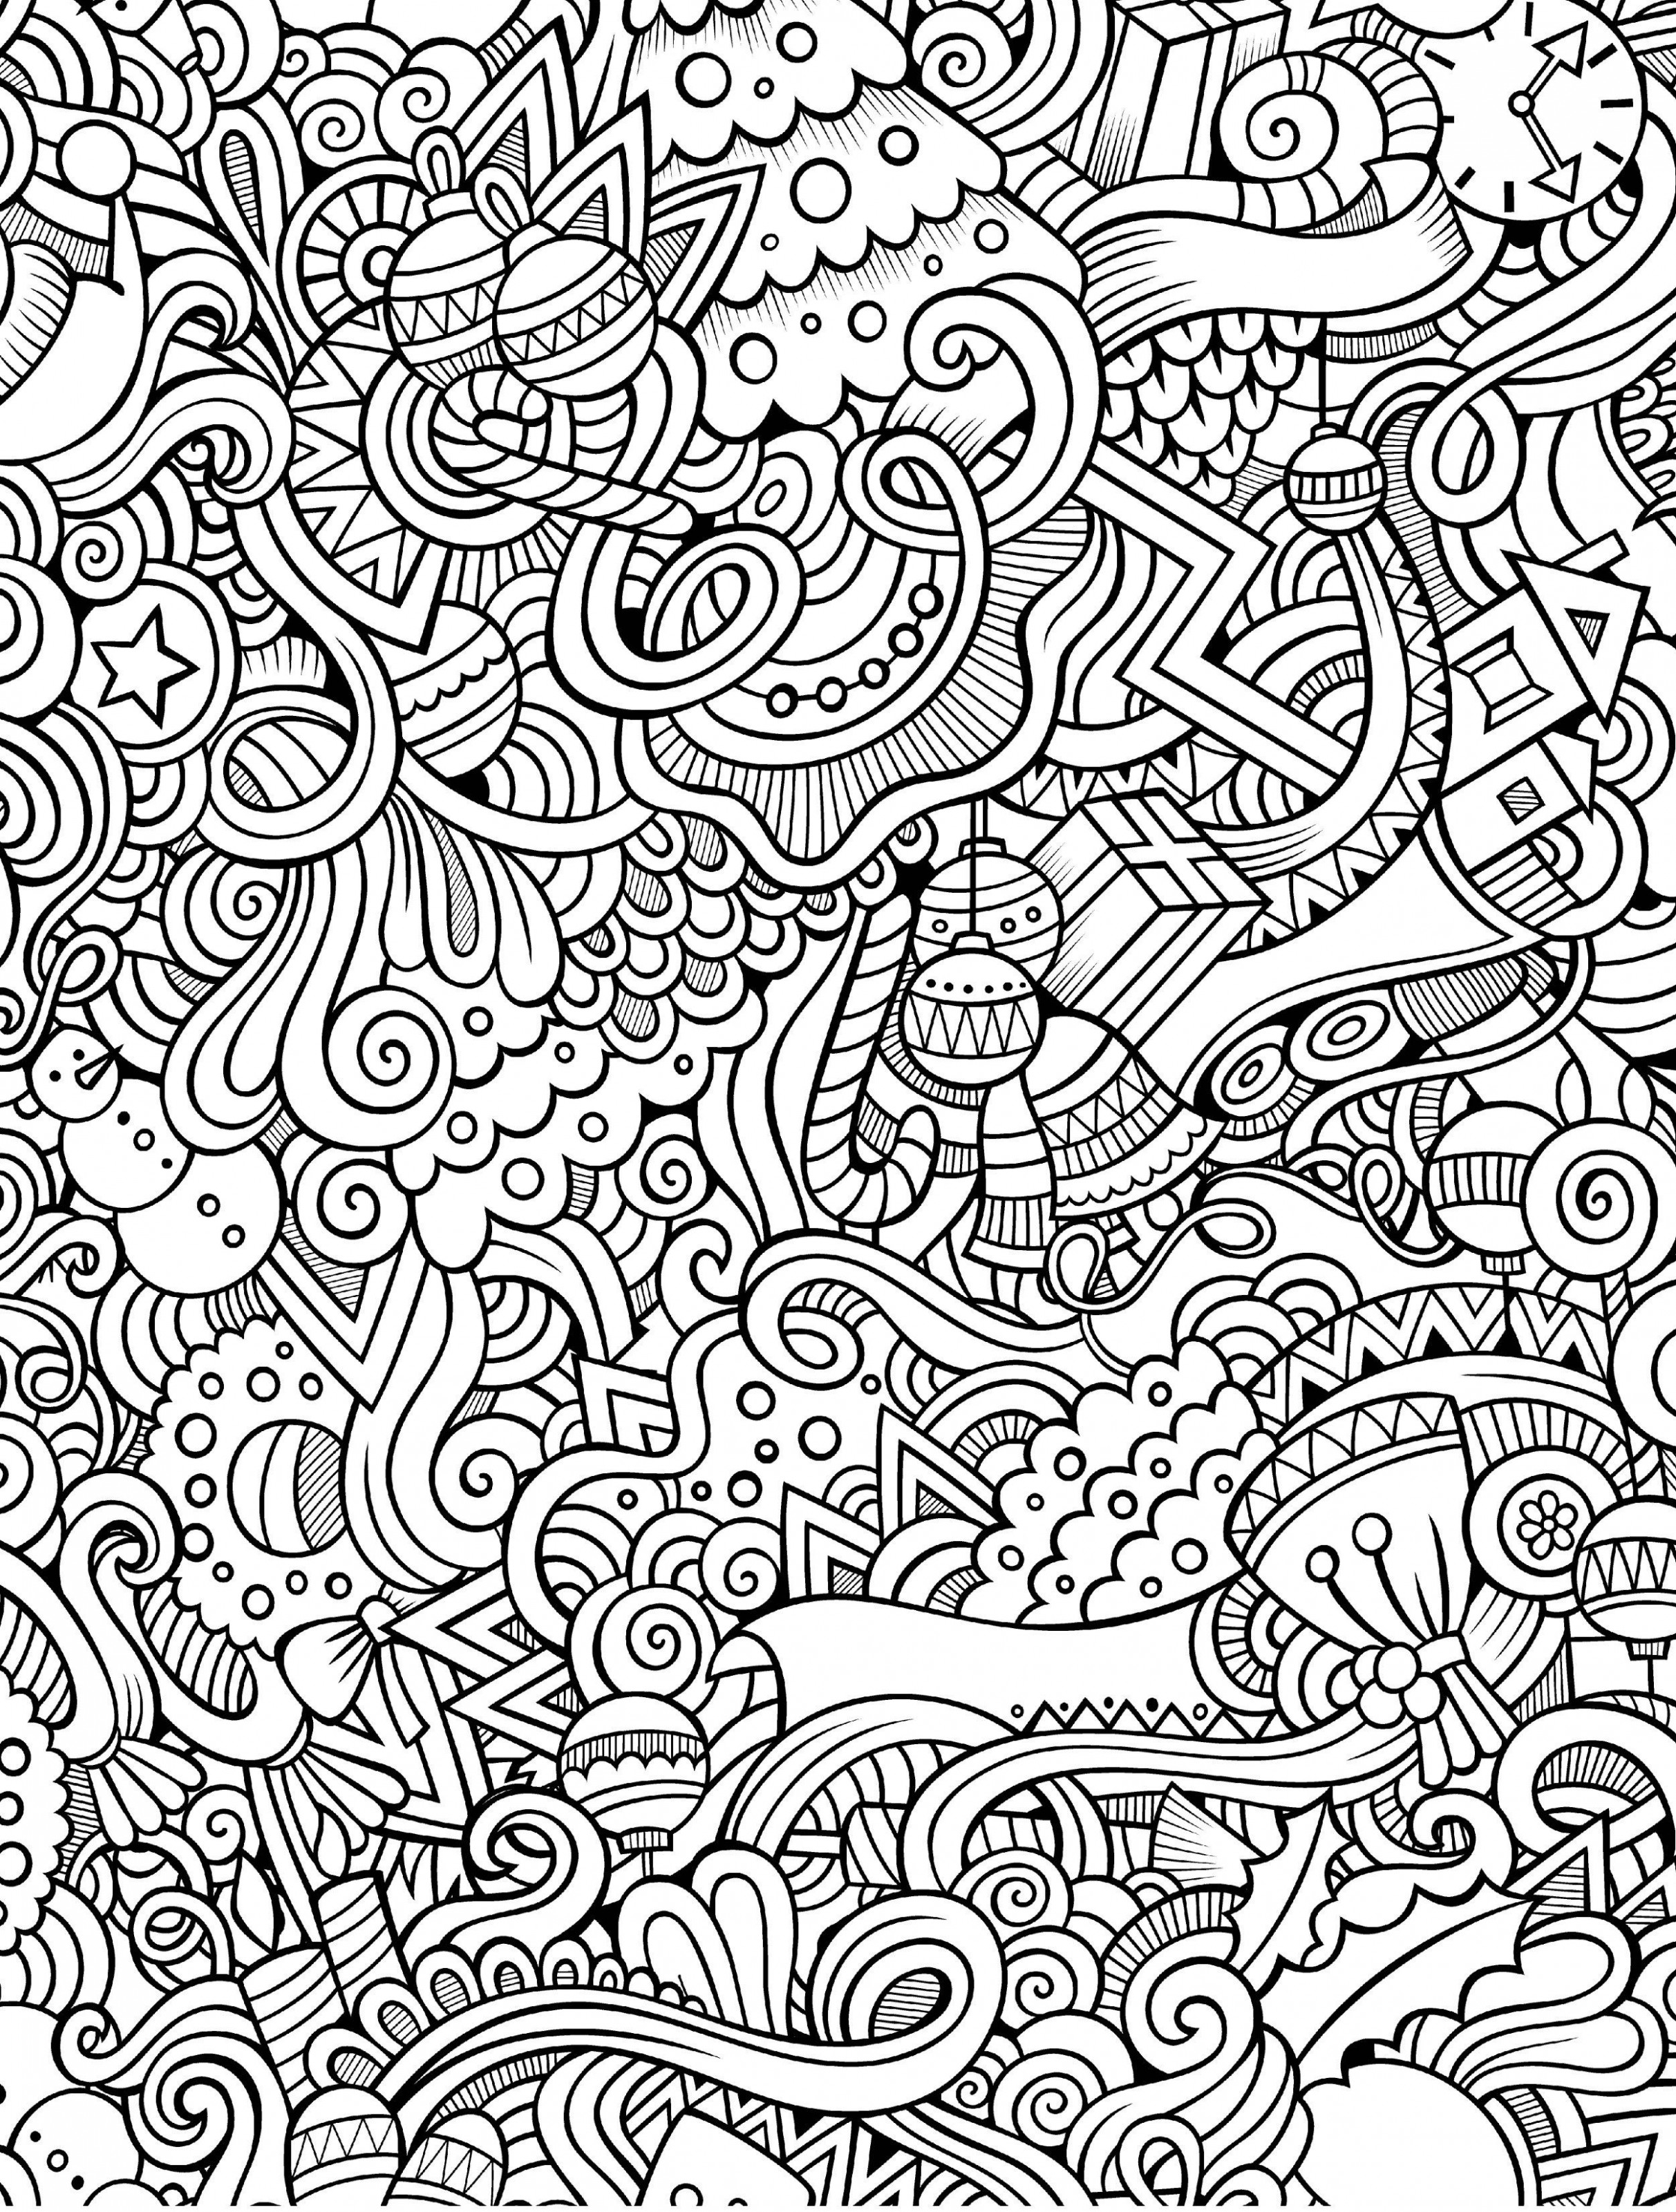 20 Free Printable Holiday Adult Coloring Pages | Coloring pages ...